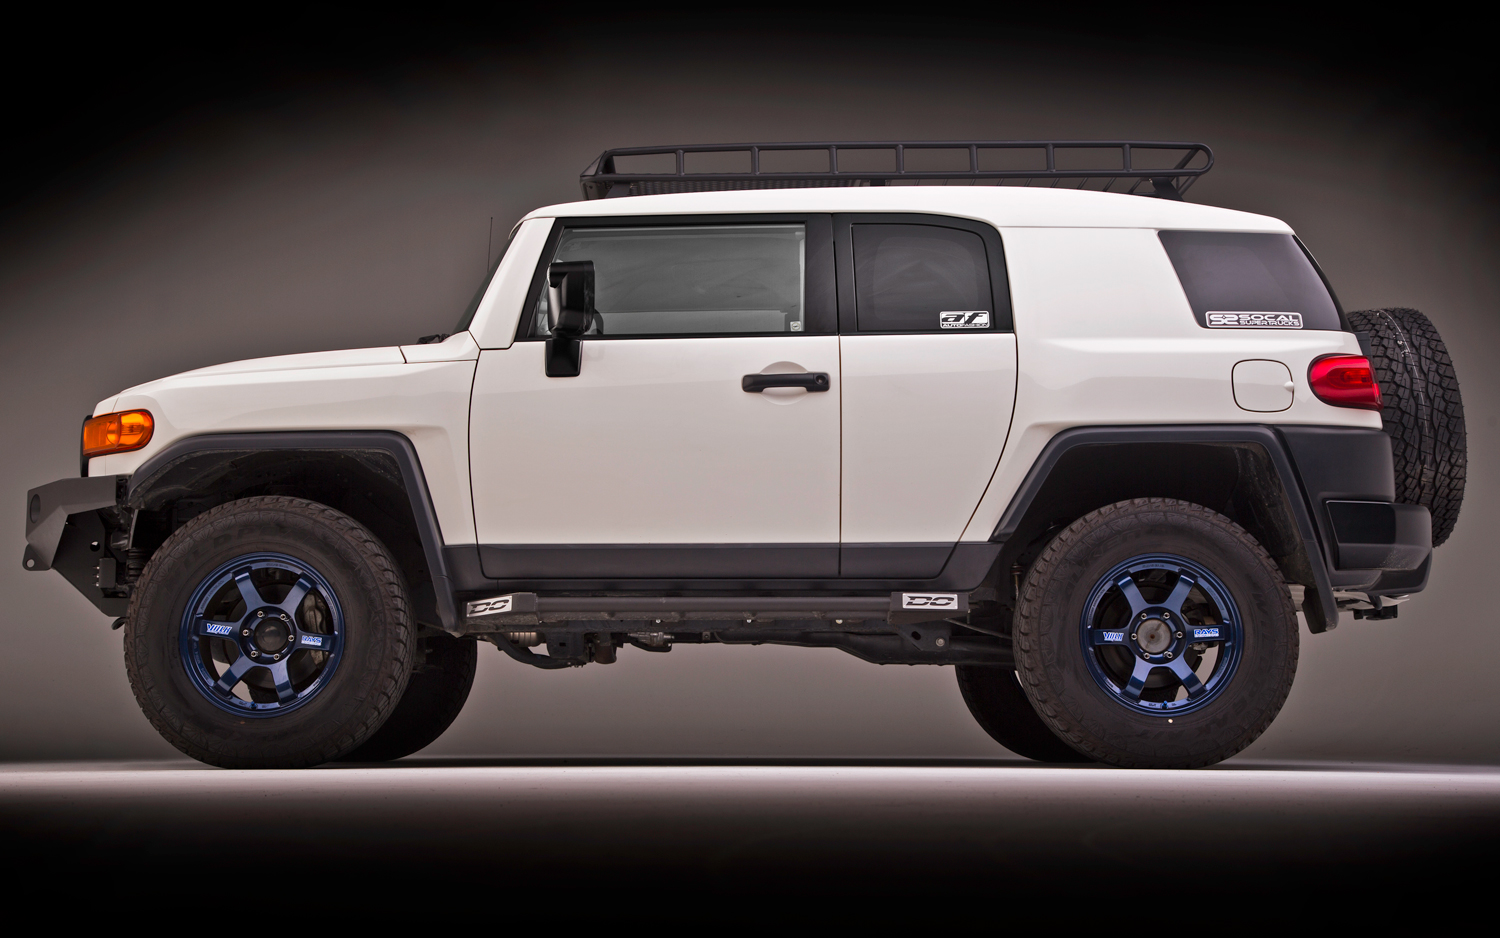 9827186toyota-fj-cruiser-falken-tire-wildpeak-a-t-side